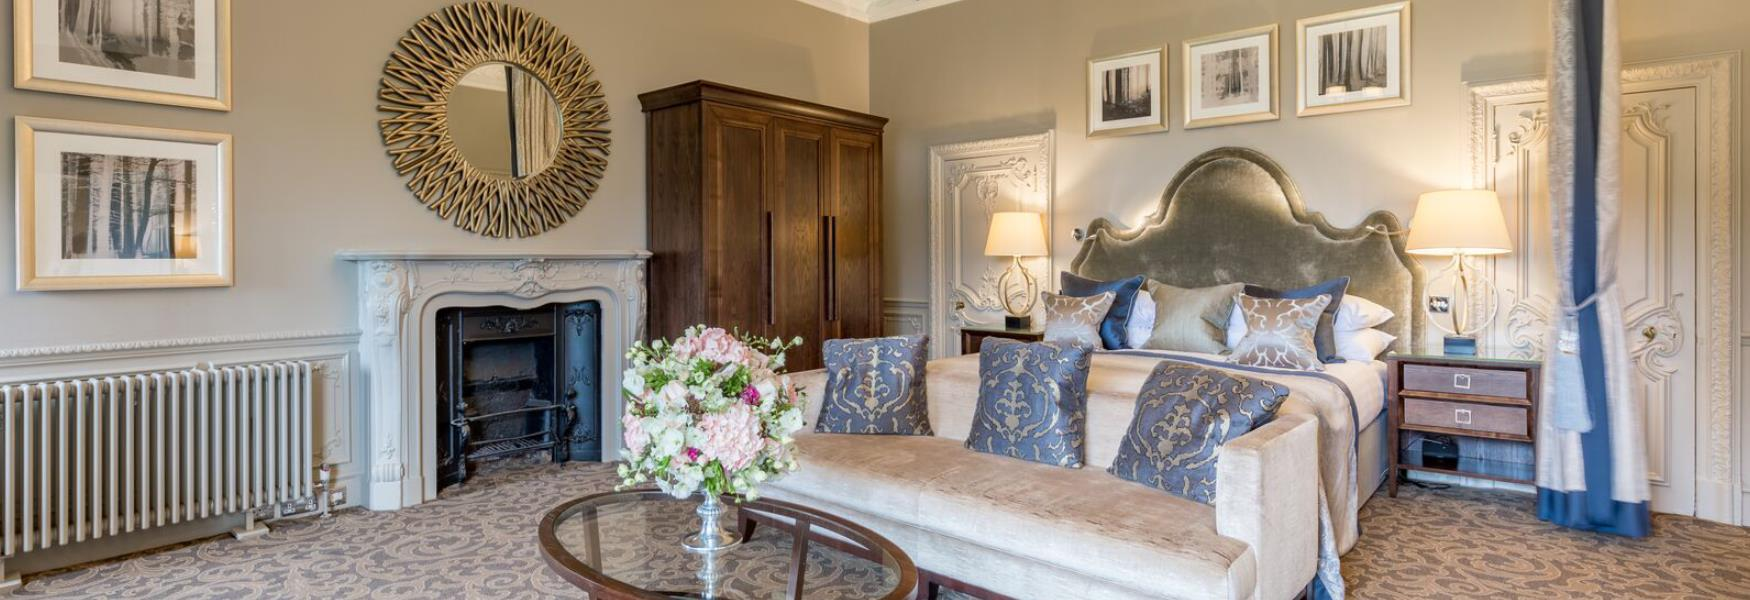 luxury hotel room at rhinefield house in Brockenhurst in the new forest